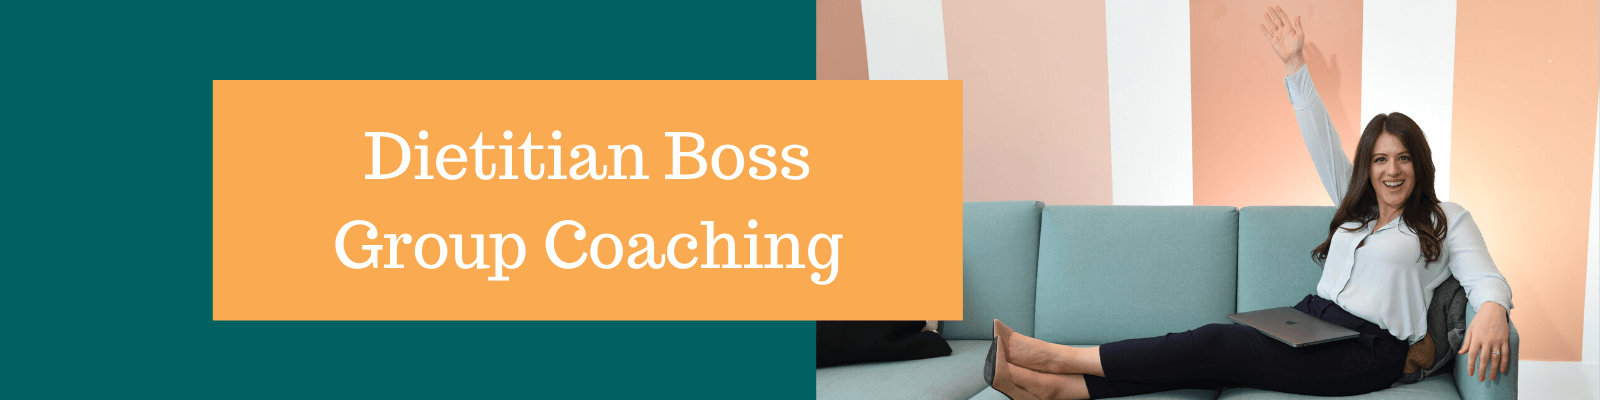 _Dietitian Boss Group Coaching